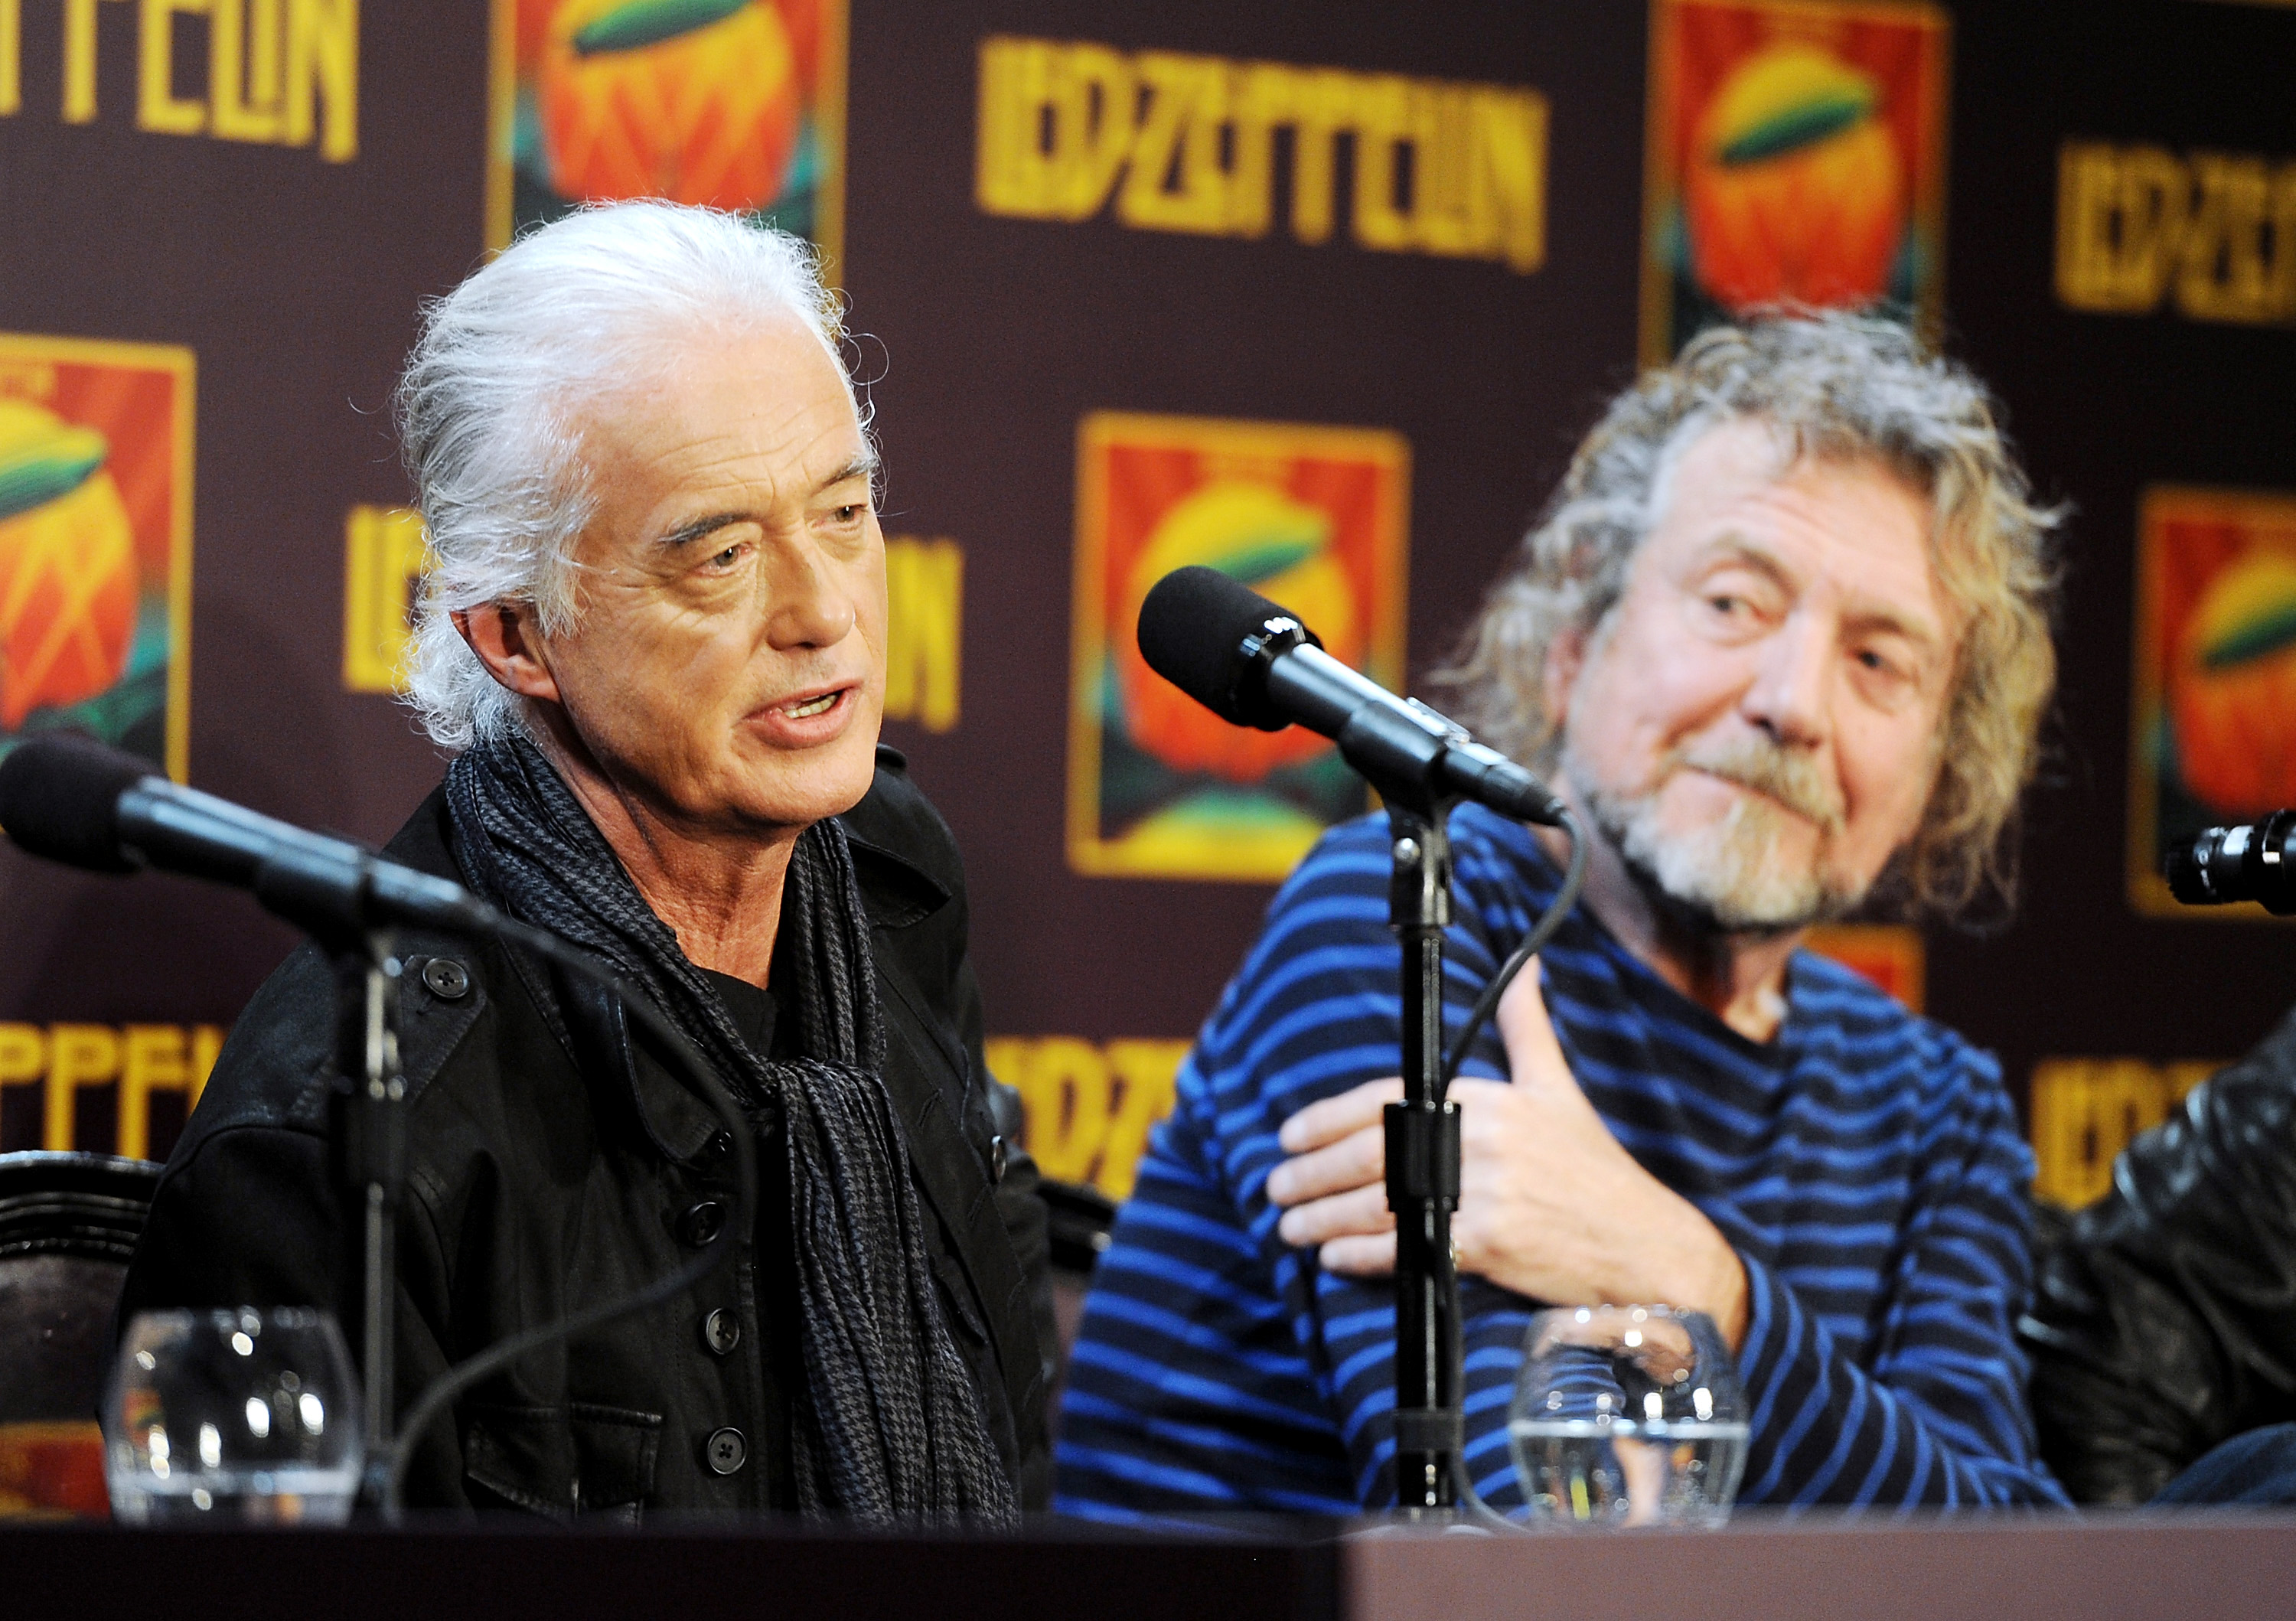 FLed Zeppelin guitarist Jimmy Page (left) and singer Robert Plant appear at a 2012 press conference ahead of the theatrical release of 'Celebration Day,' a concert film of their 2007 London O2 arena reunion show, at the Museum of Modern Art in New York. A federal court jury decided Thursday the band did not steal a riff from an obscure 1960s instrumental tune to use for the introduction of its classic rock anthem 'Stairway to Heaven.' | EVAN AGOSTINI / INVISION / AP